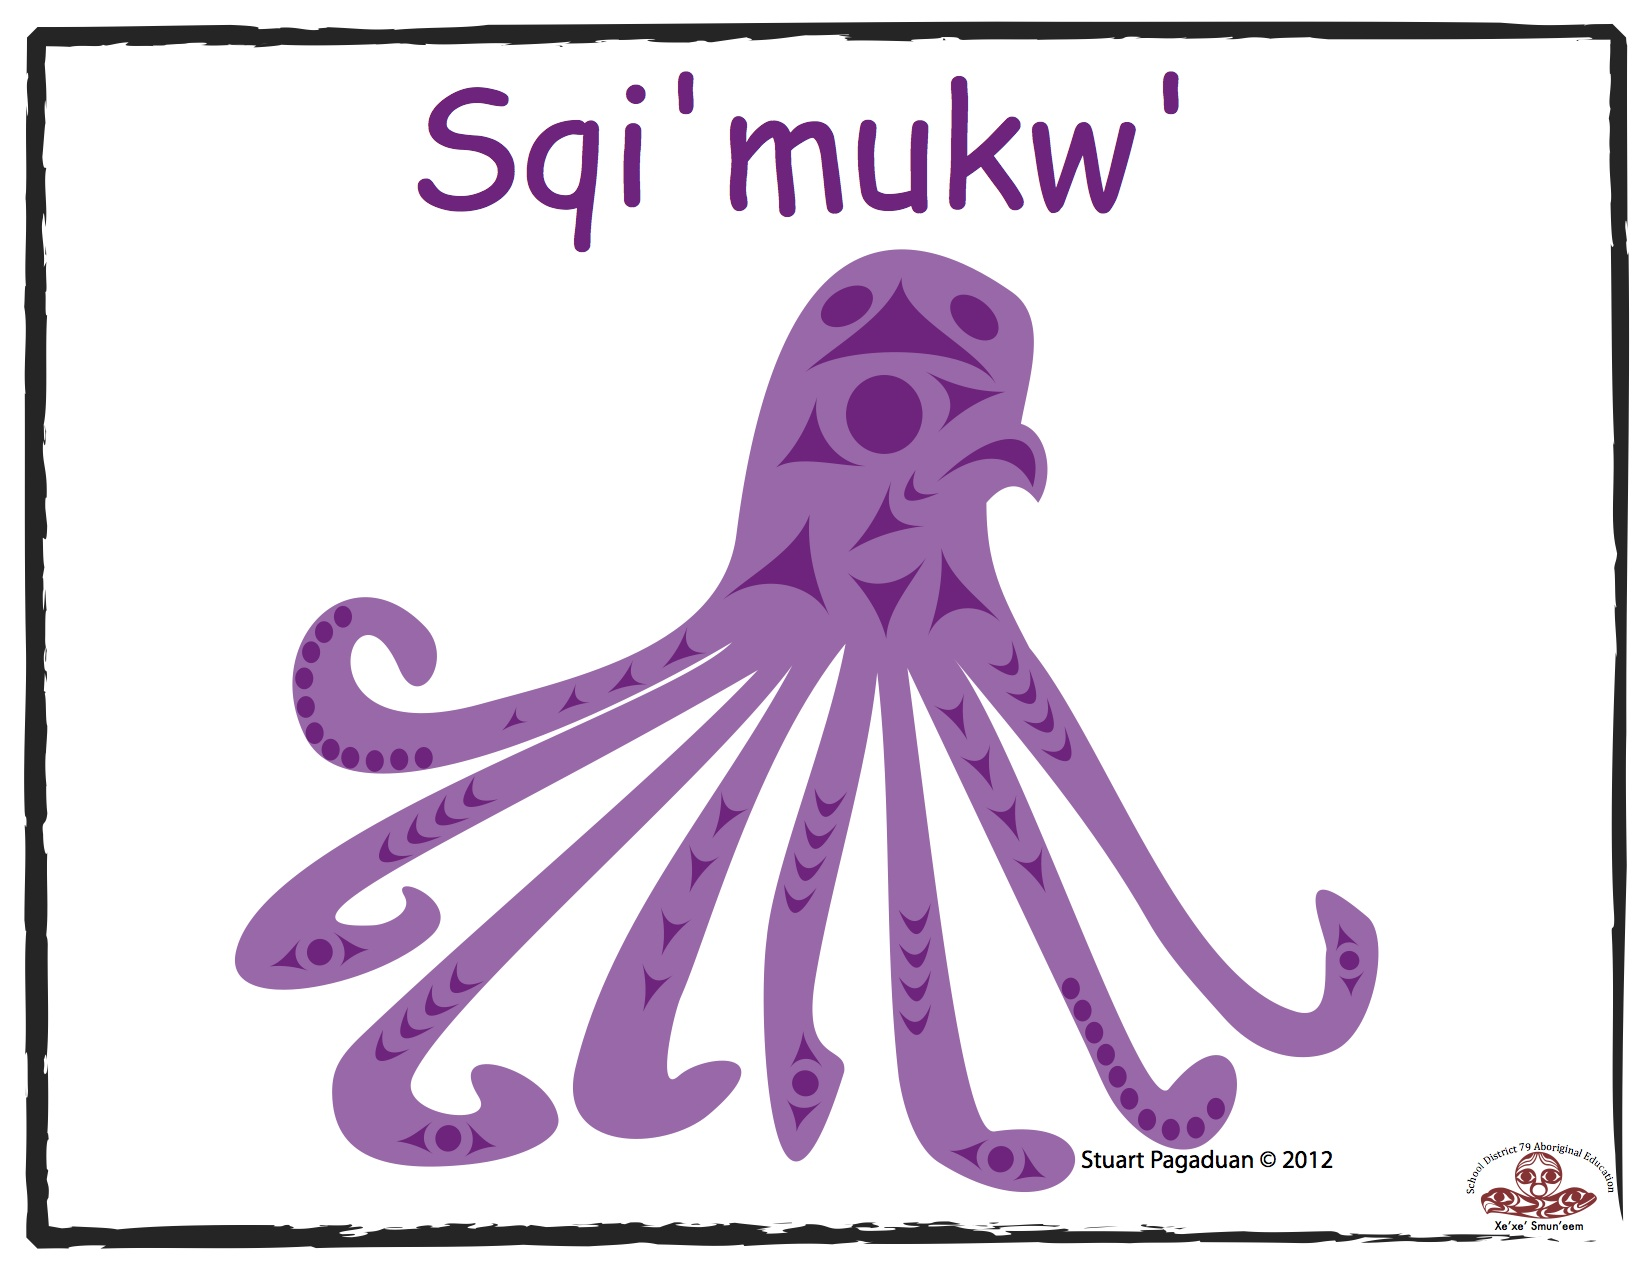 octopus-sqimukw-colour